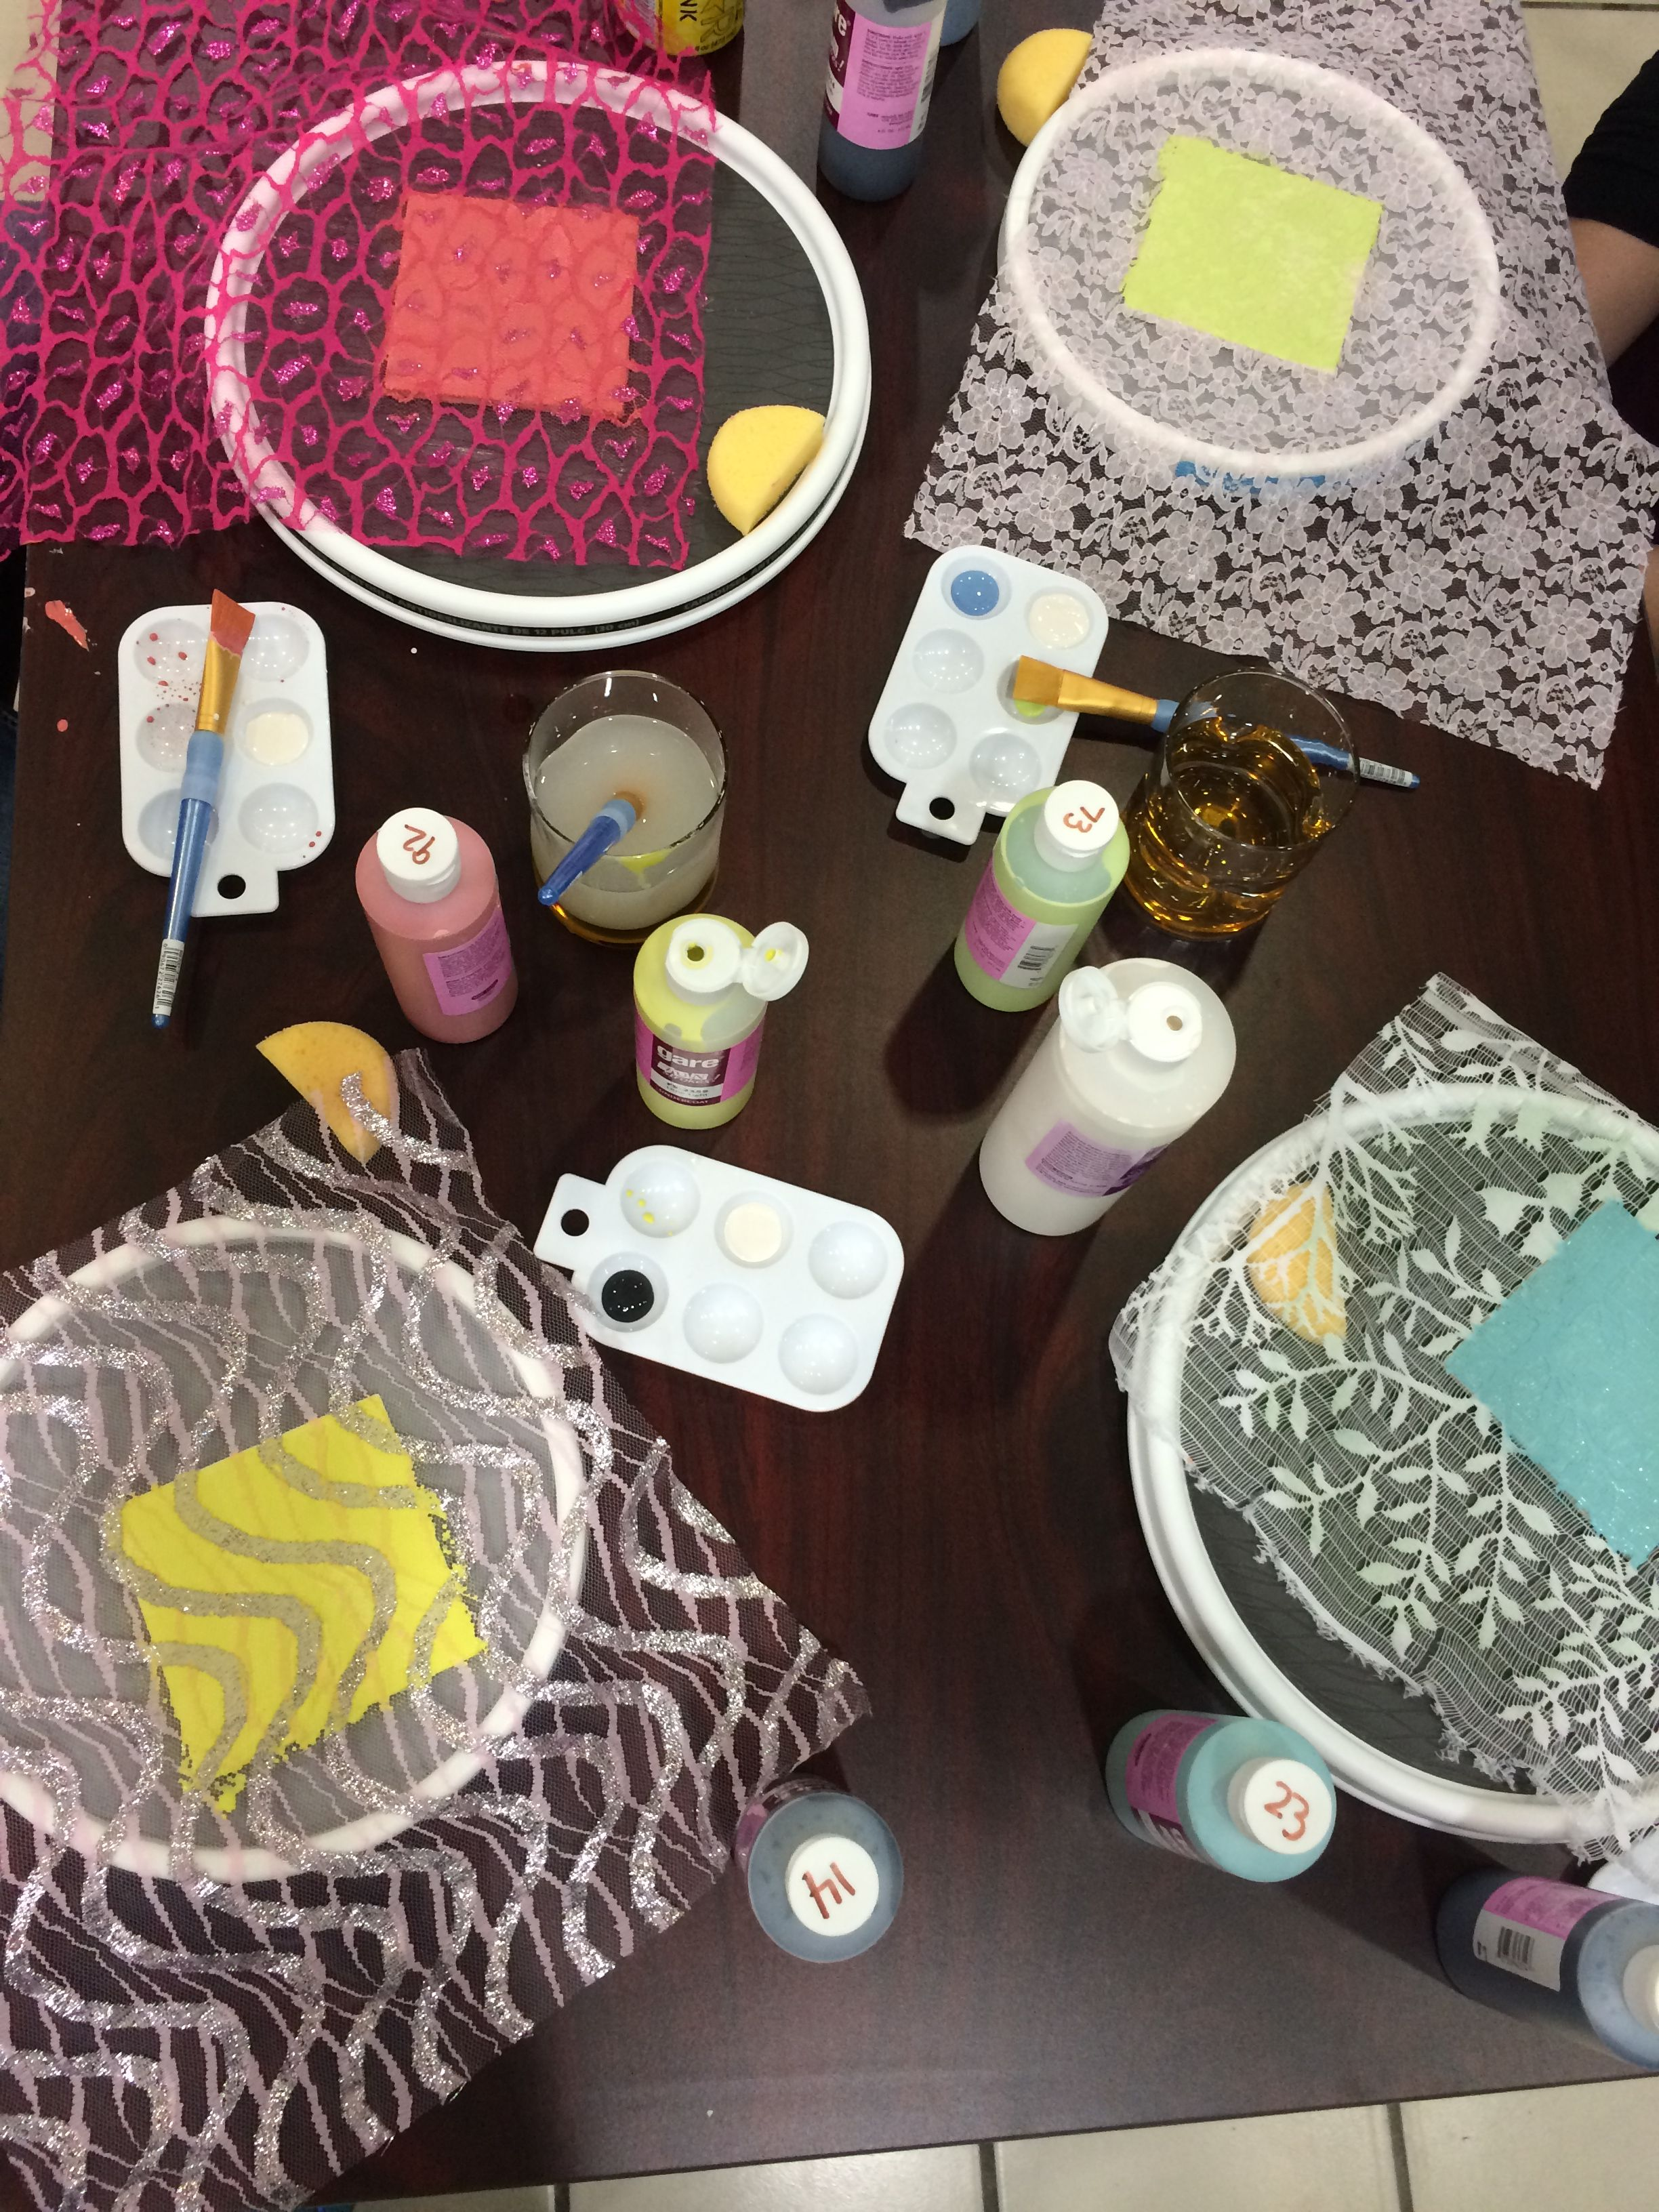 First time lace in Clackamas Town Center #RoseCityCeramics